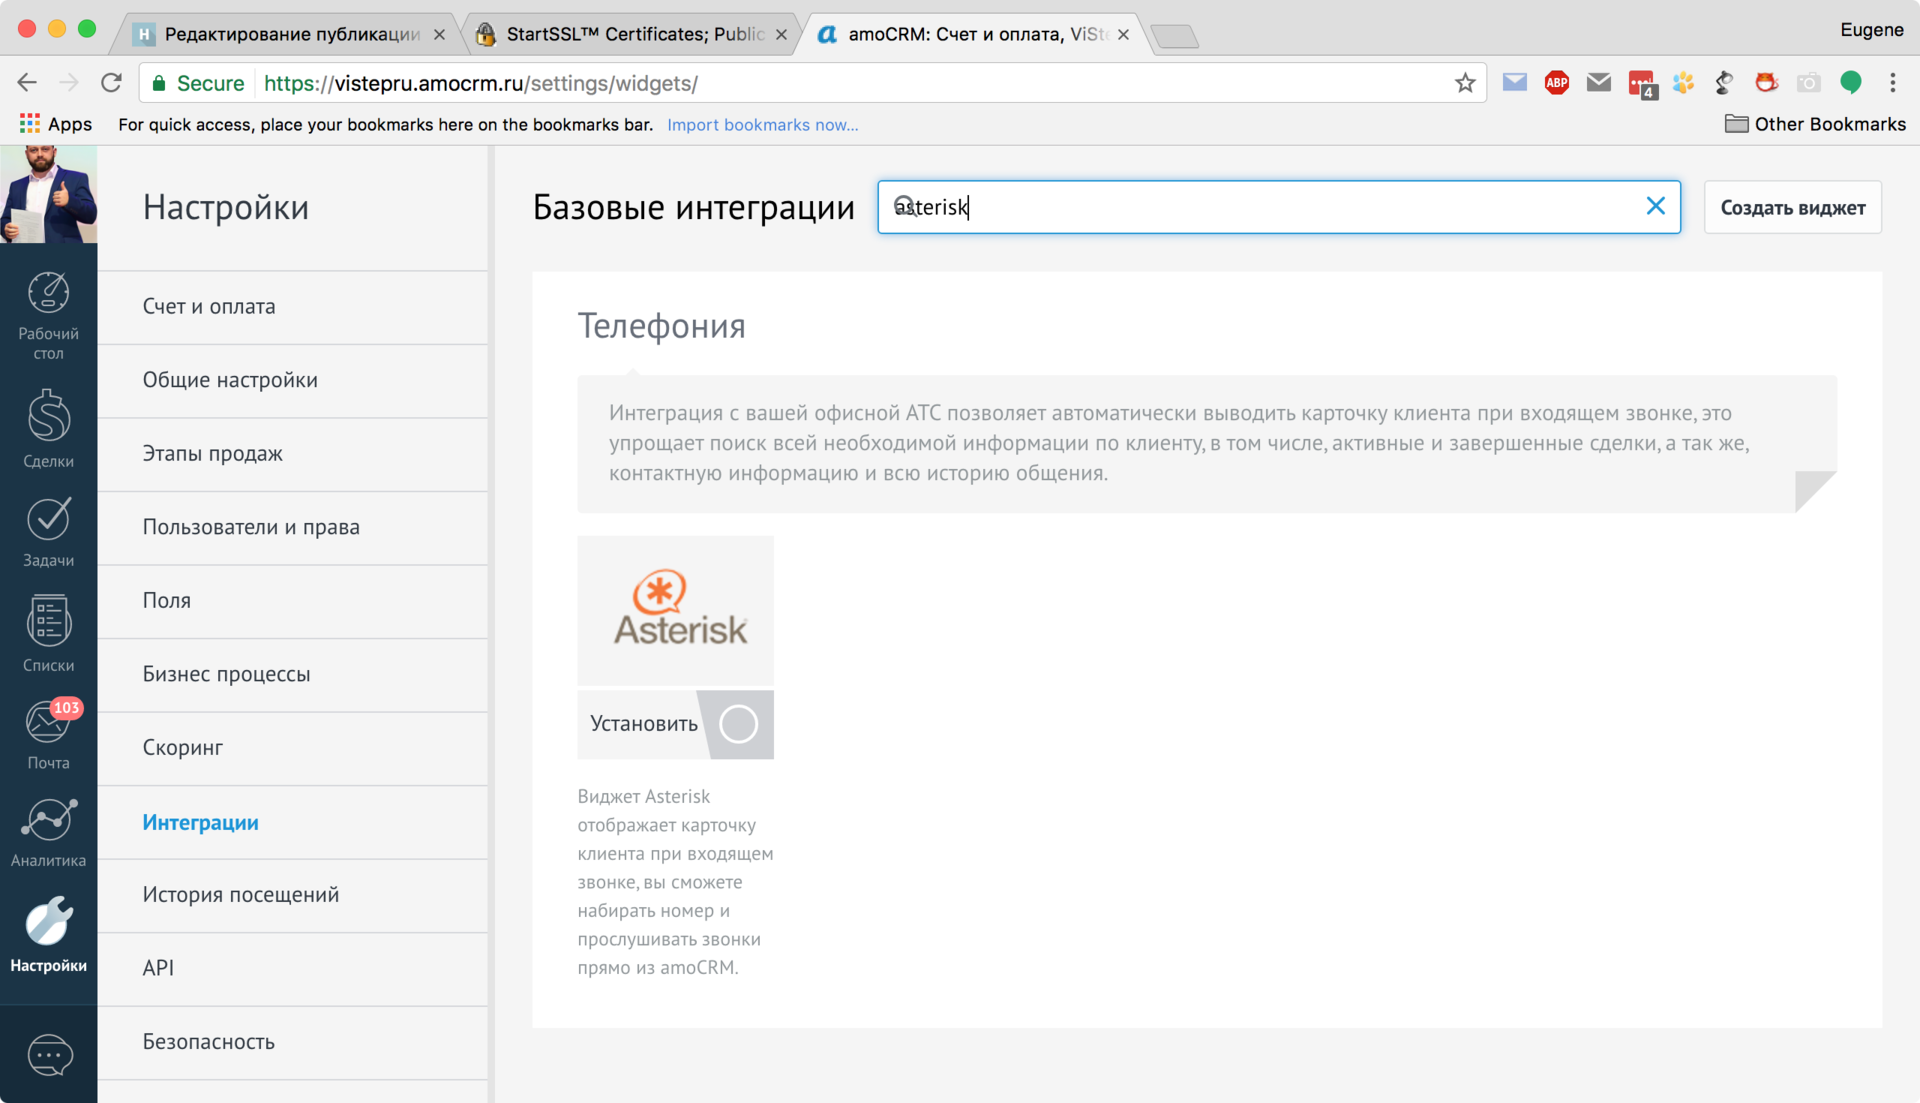 Asterisk. Интеграция с amoCRM, step-by-step guide - 1